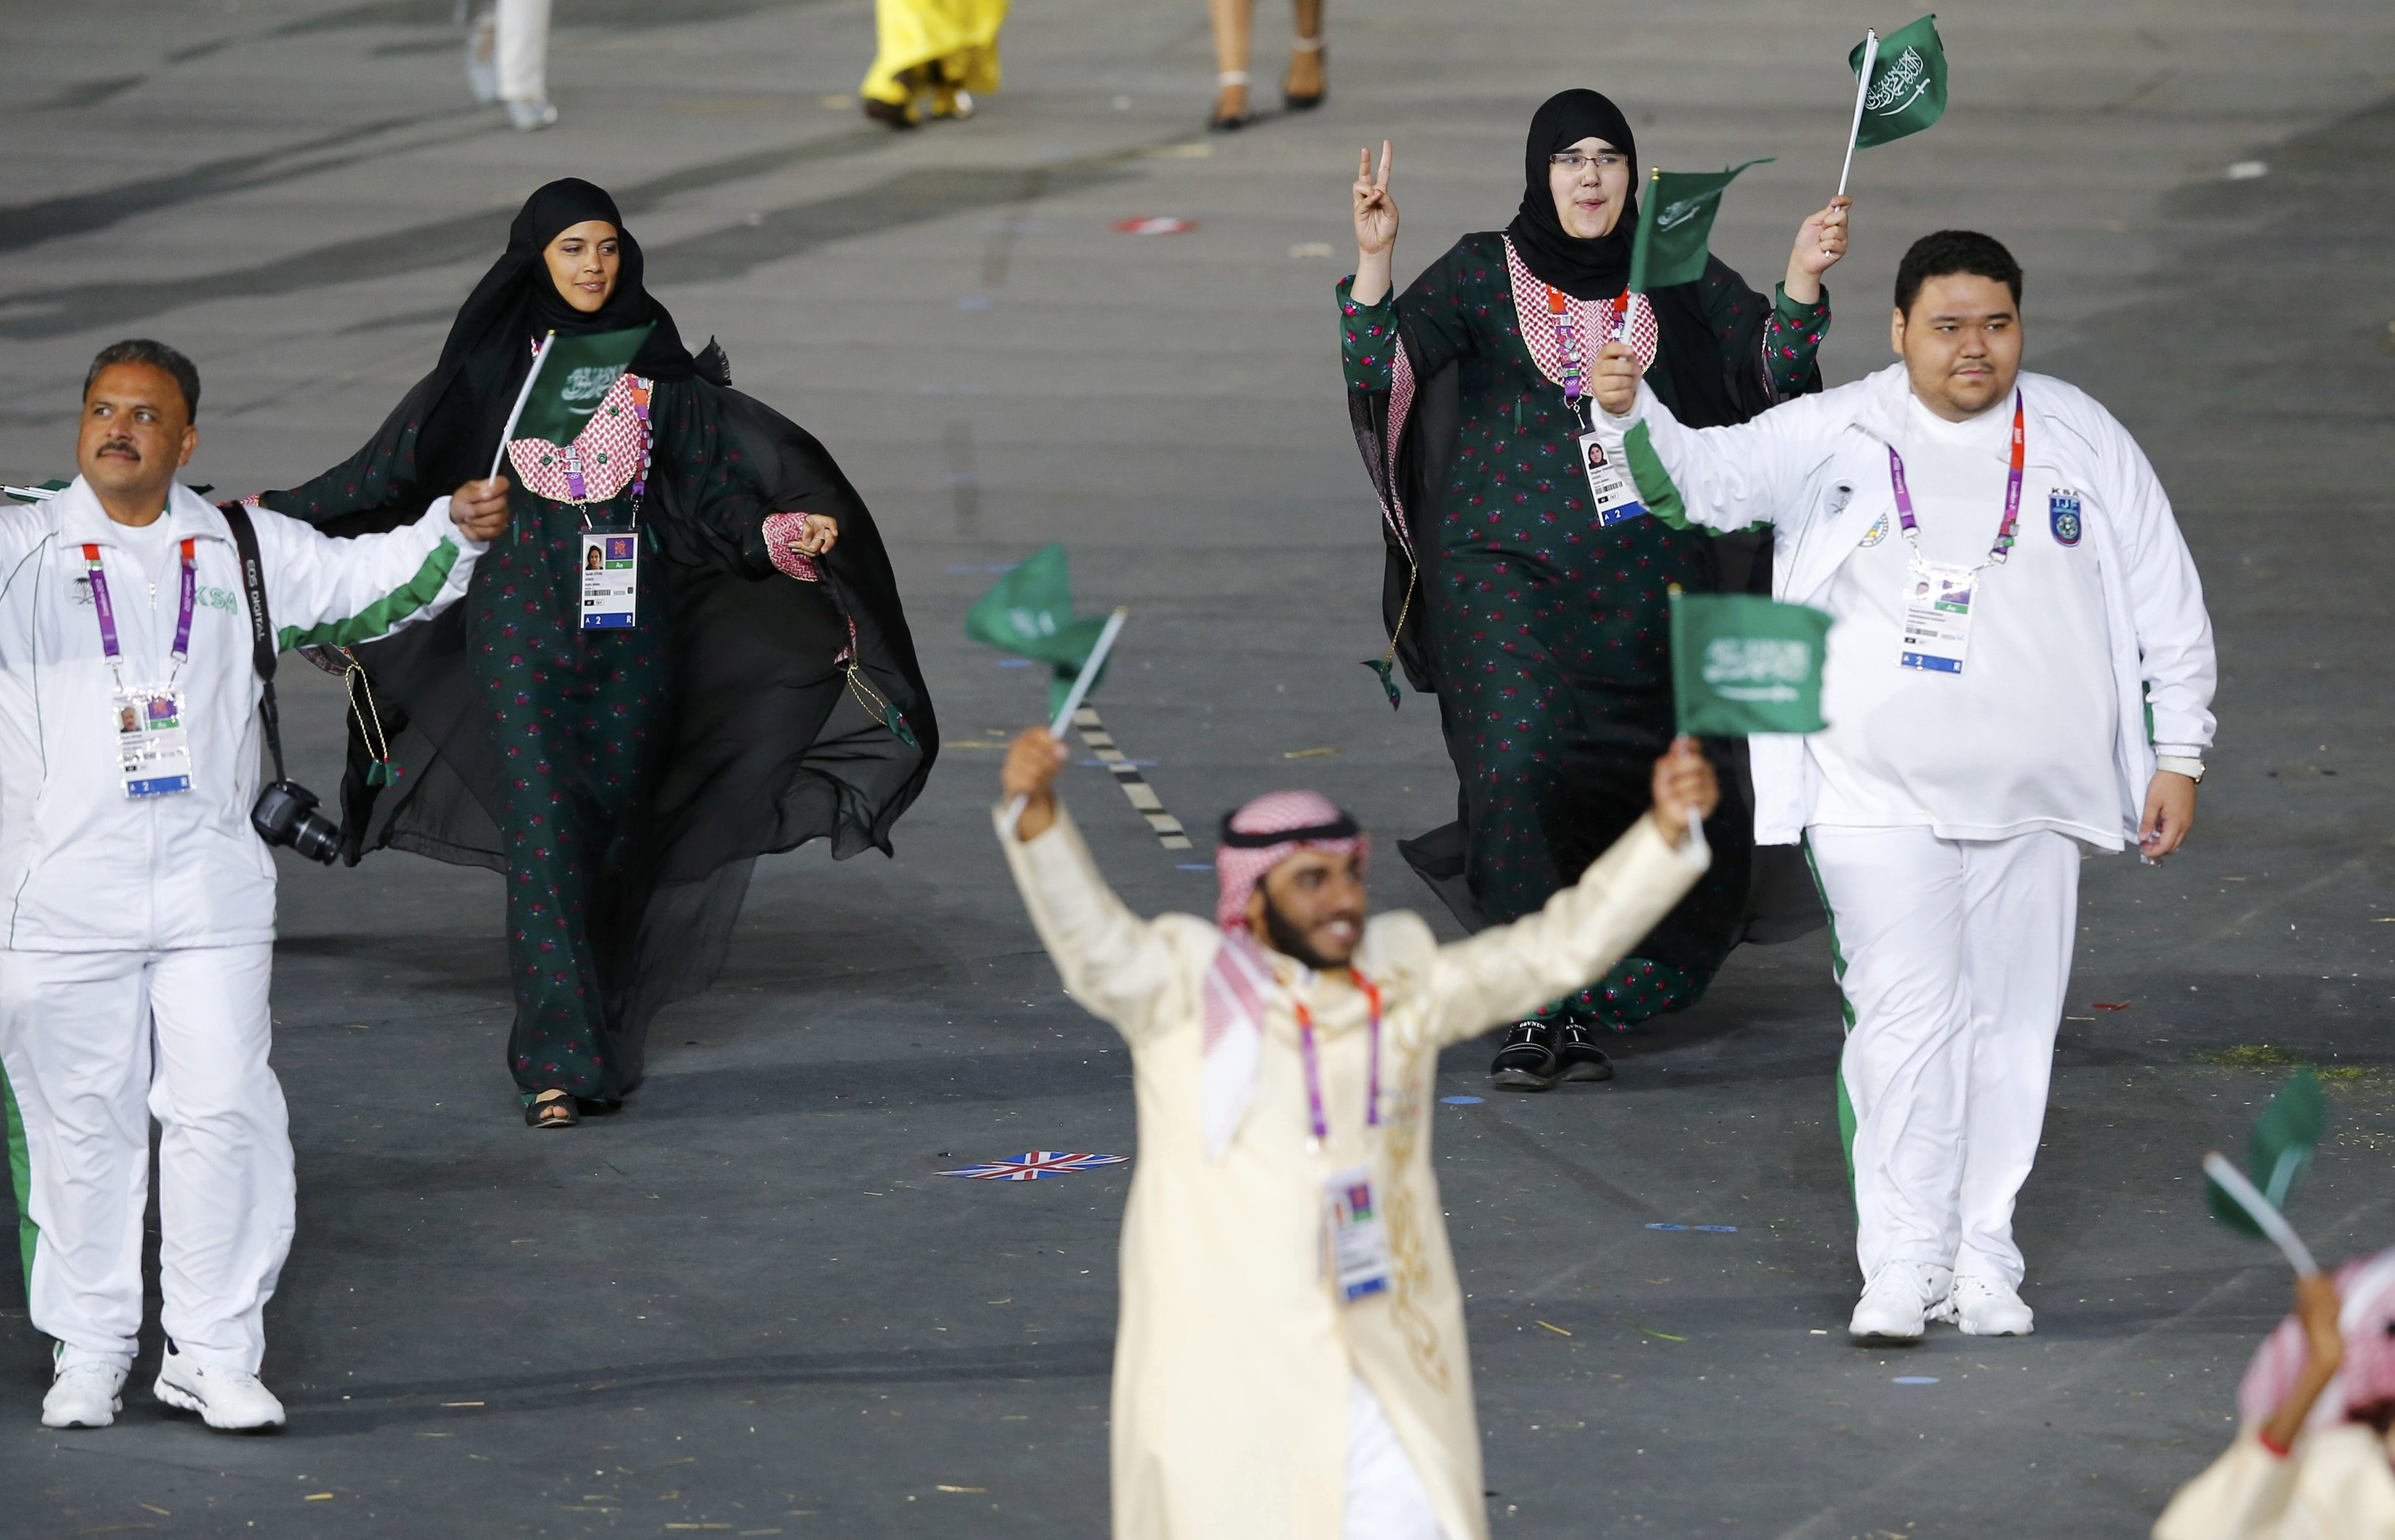 Saudi Women's Olympic March Draws Praise, Blame